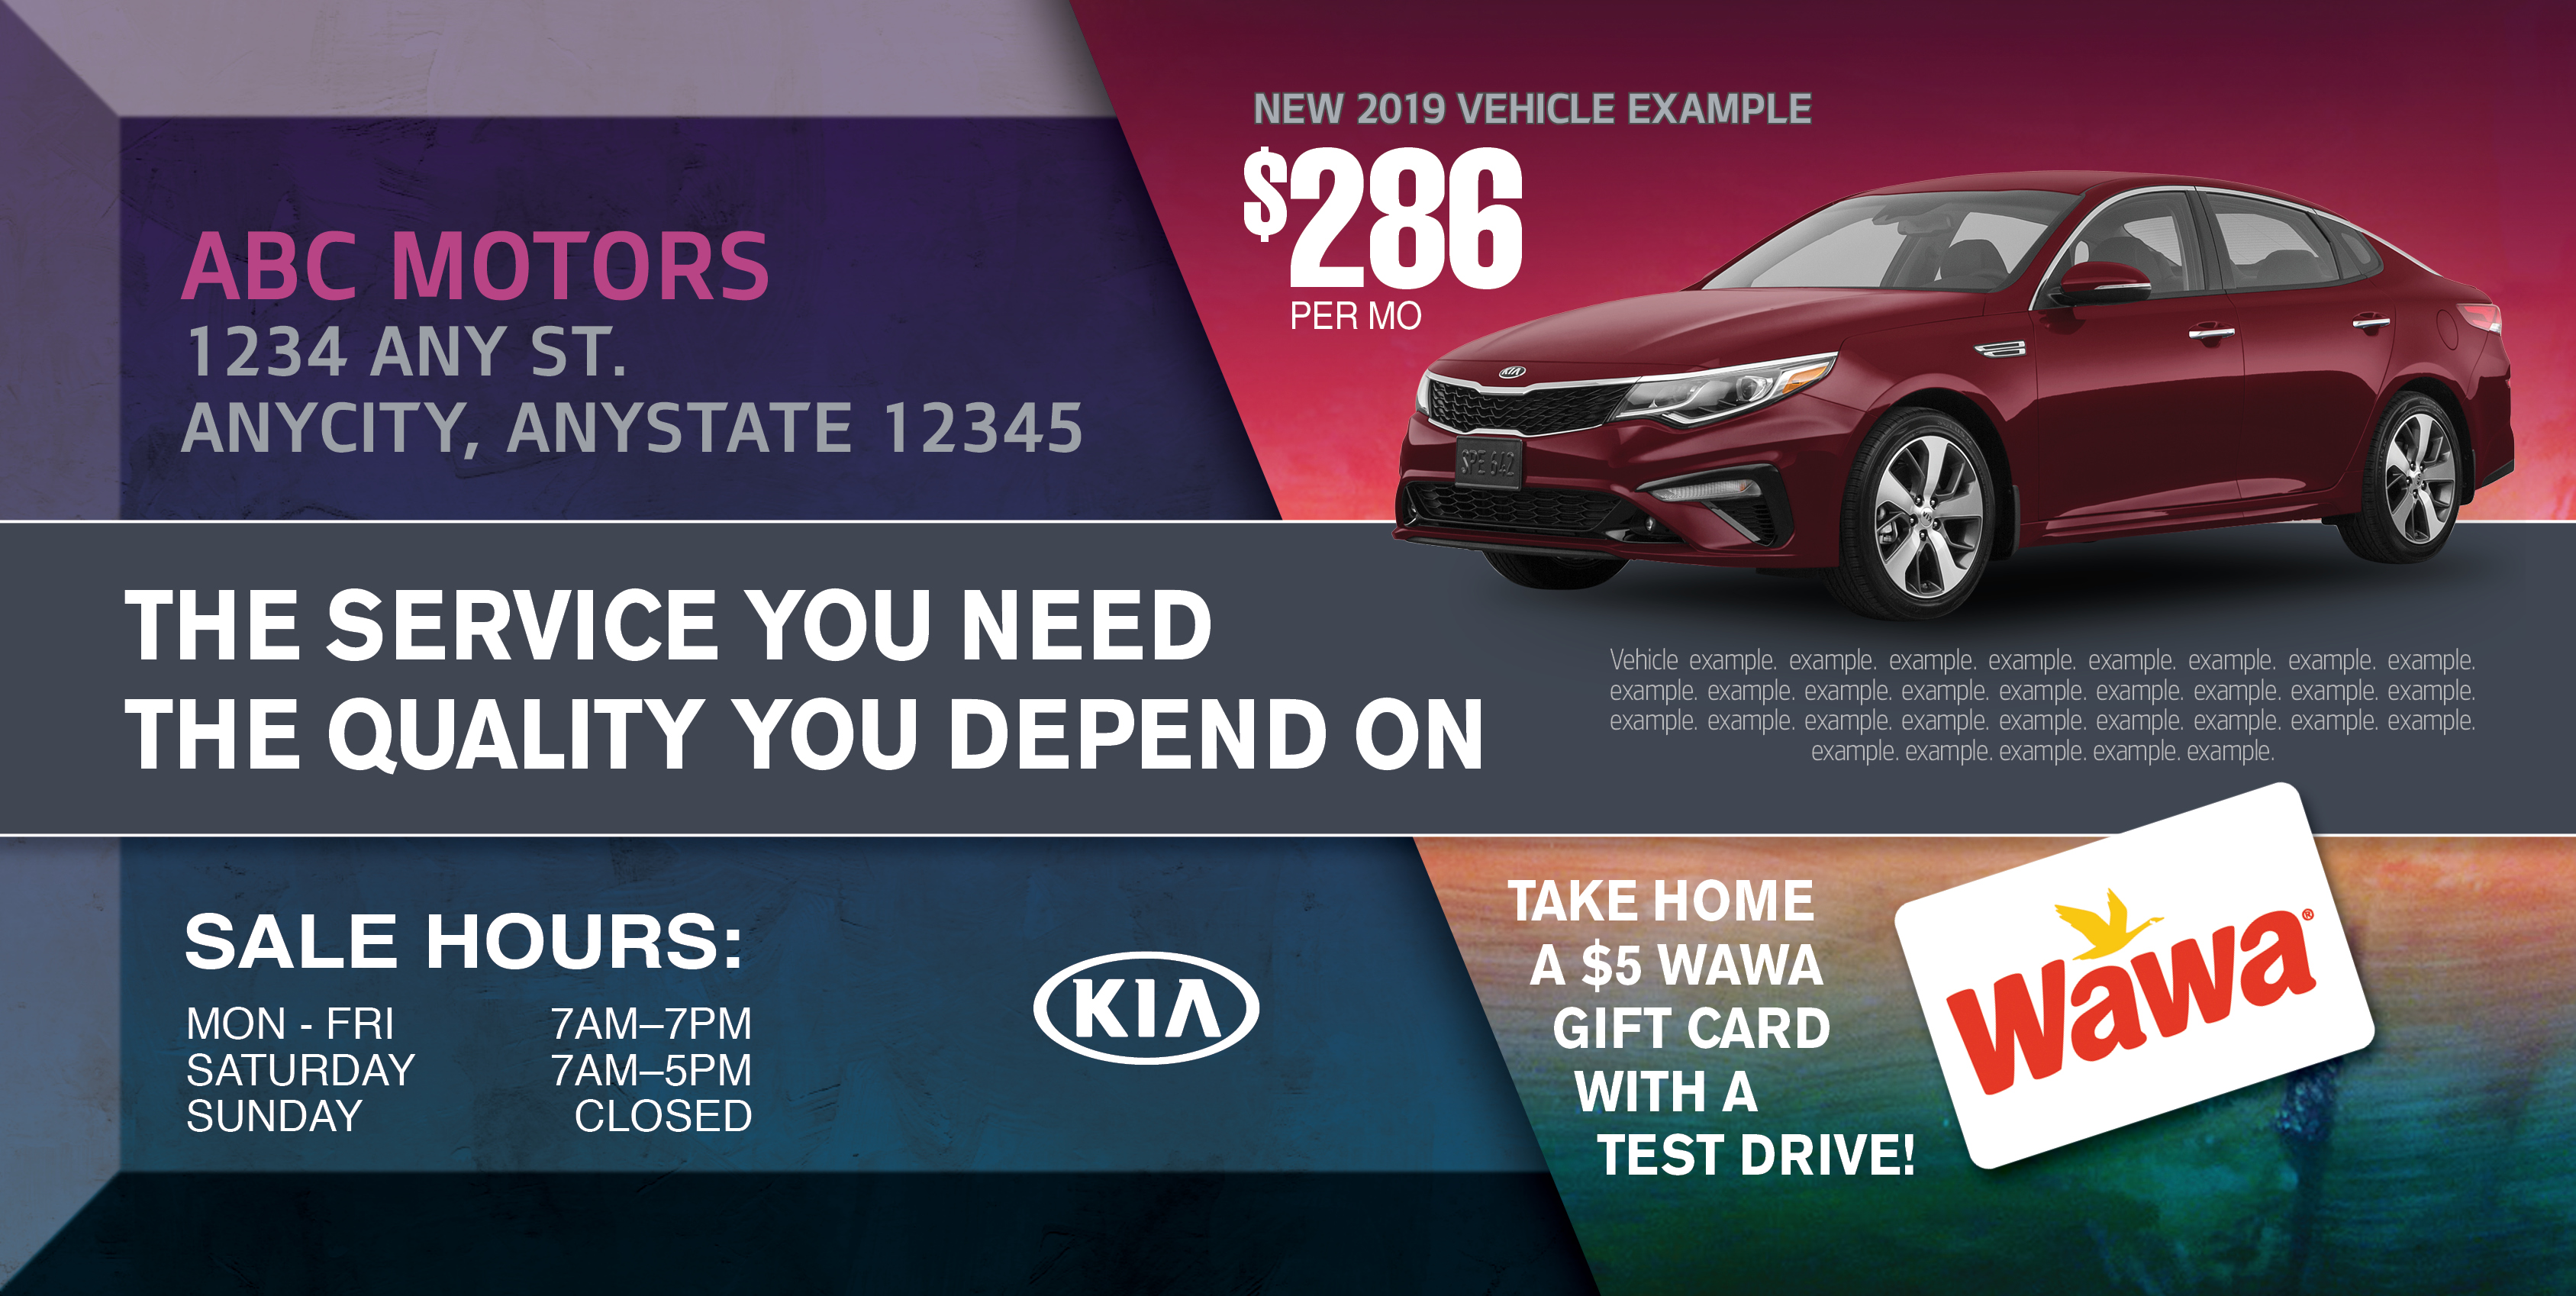 The Service you need 5x11PC PQ KIA2